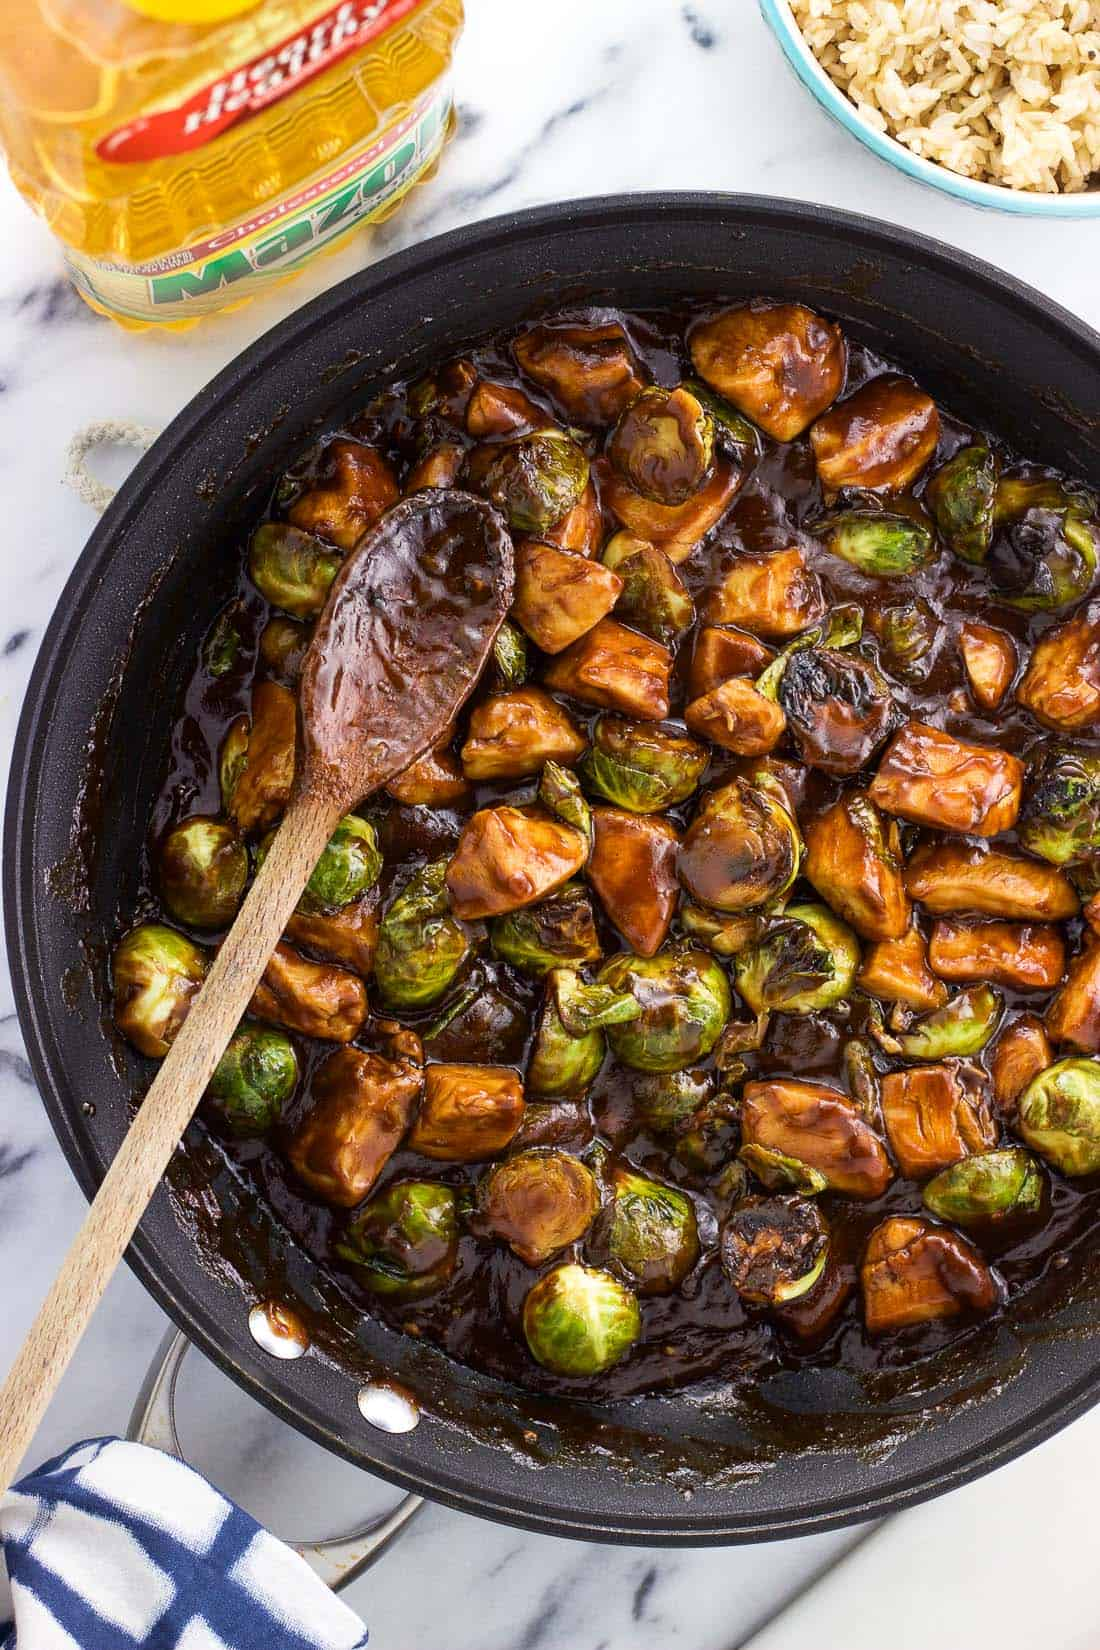 Balsamic peanut chicken stir fry with brussels sprouts makes a delicious one pan dinner! This hearty main dish recipe is done in 30 minutes, making this satisfying meal perfect for busy weeknights.